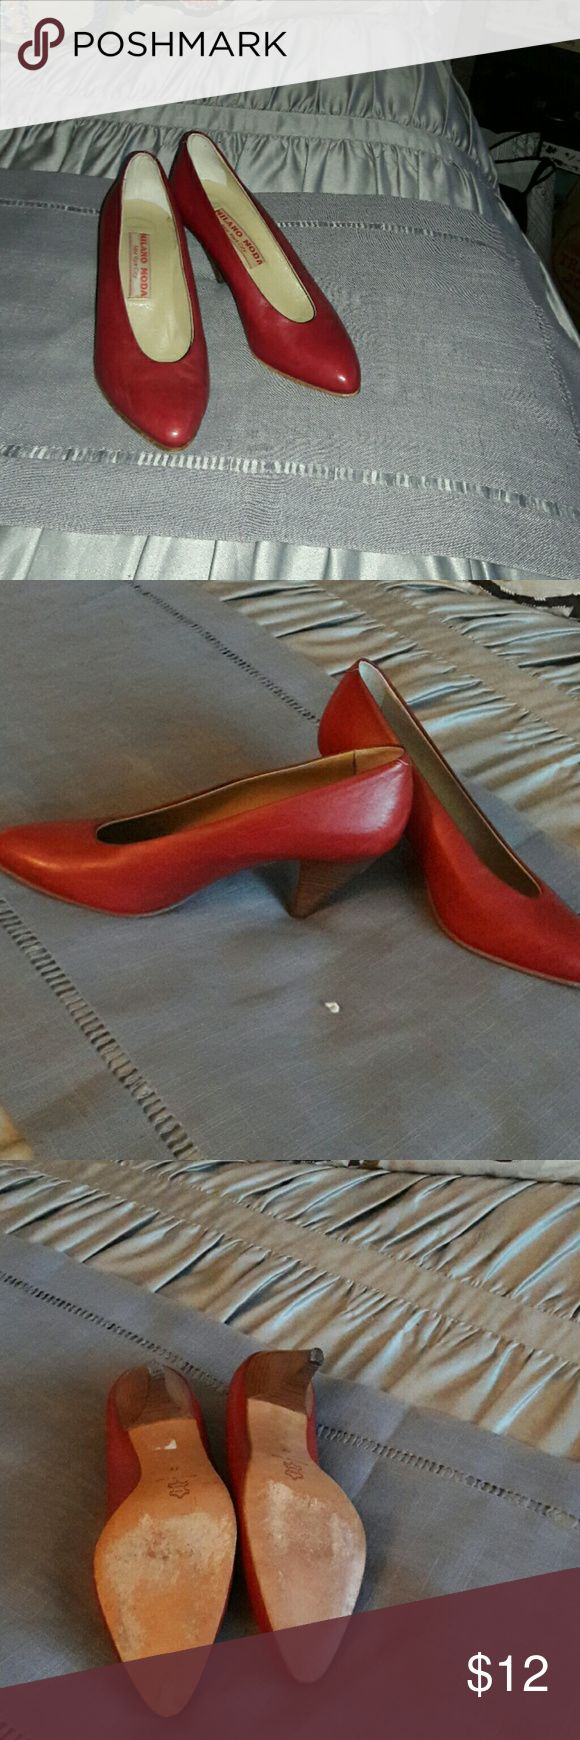 Vintage Italian shoes Red leather Italian shoe with wood stacked heel of 2 inches good condition and leather sole. Milan moda Shoes Heels